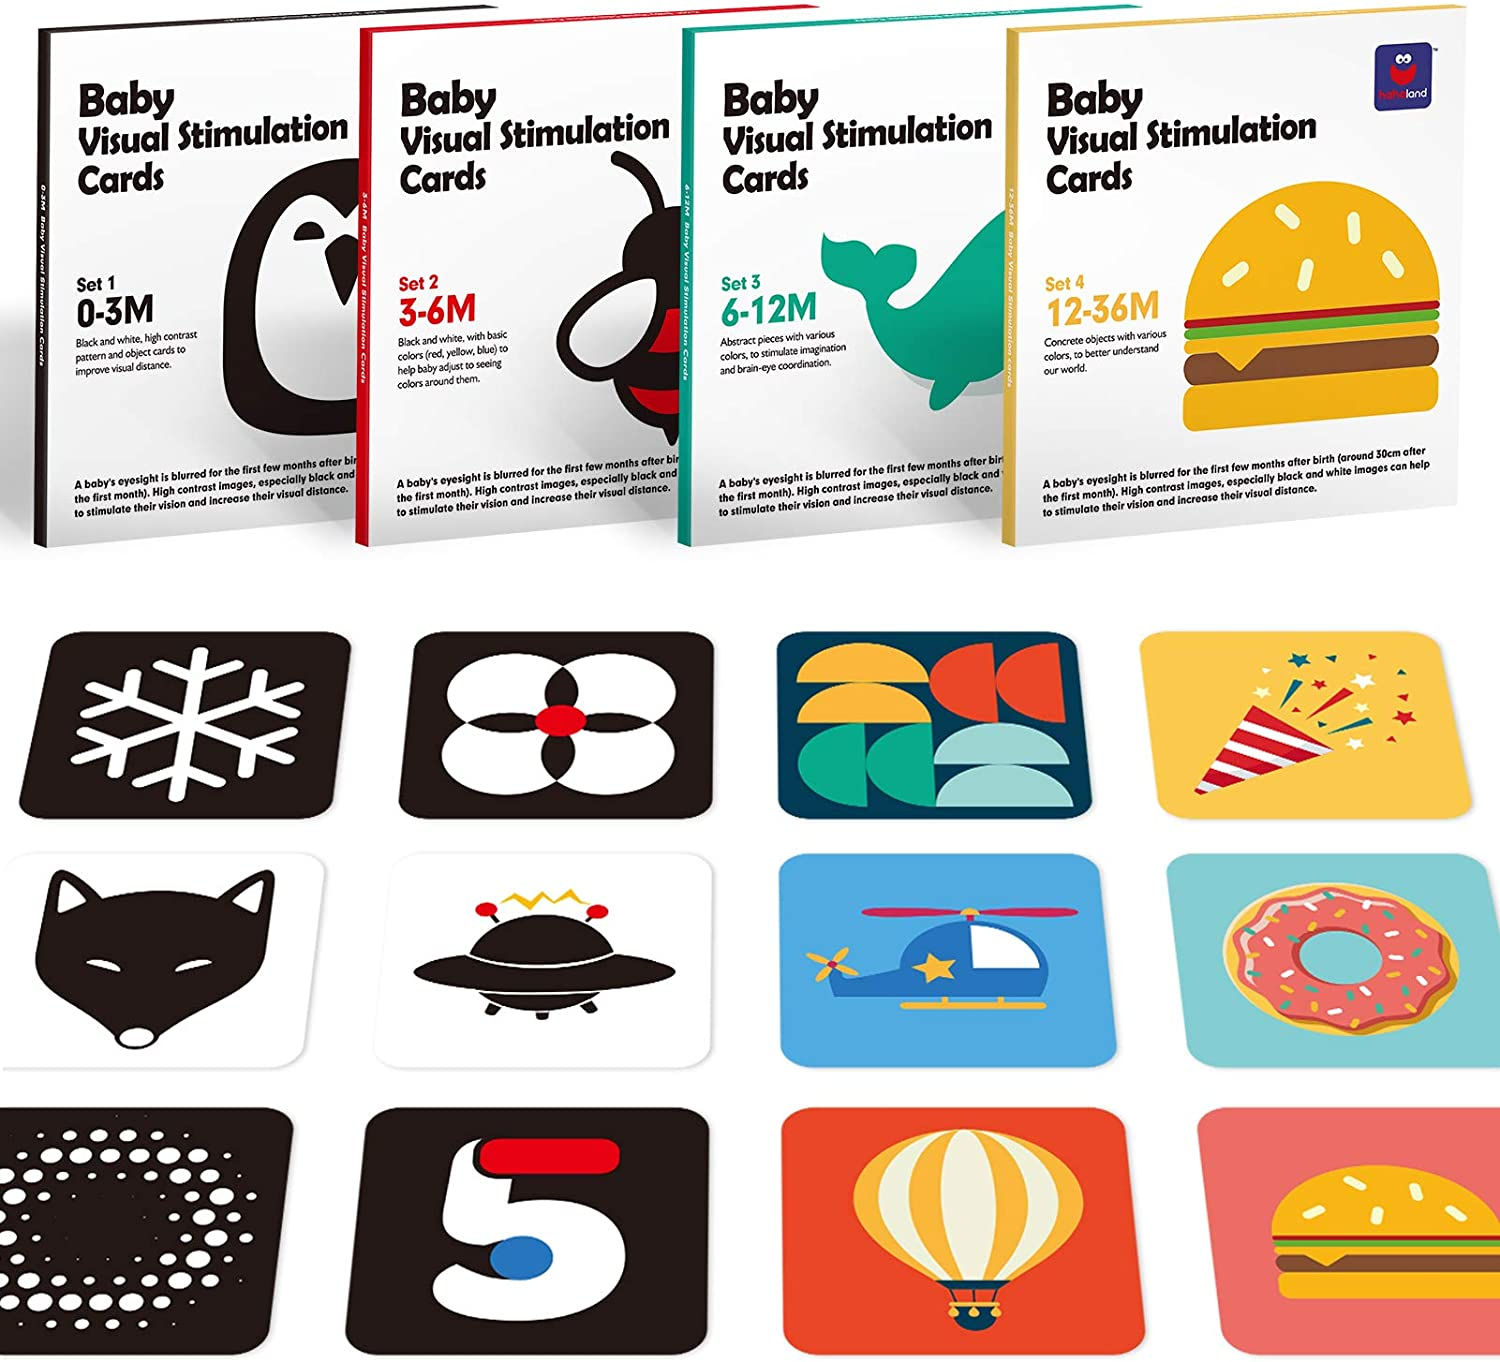 Baby Flash Cards Baby Visual Stimulation Cards 0-3-6-12-36 Months, 80PCS 160 Pages Black White Colorful Double Sided High Contrast Card Newborn Gifts Baby Toys